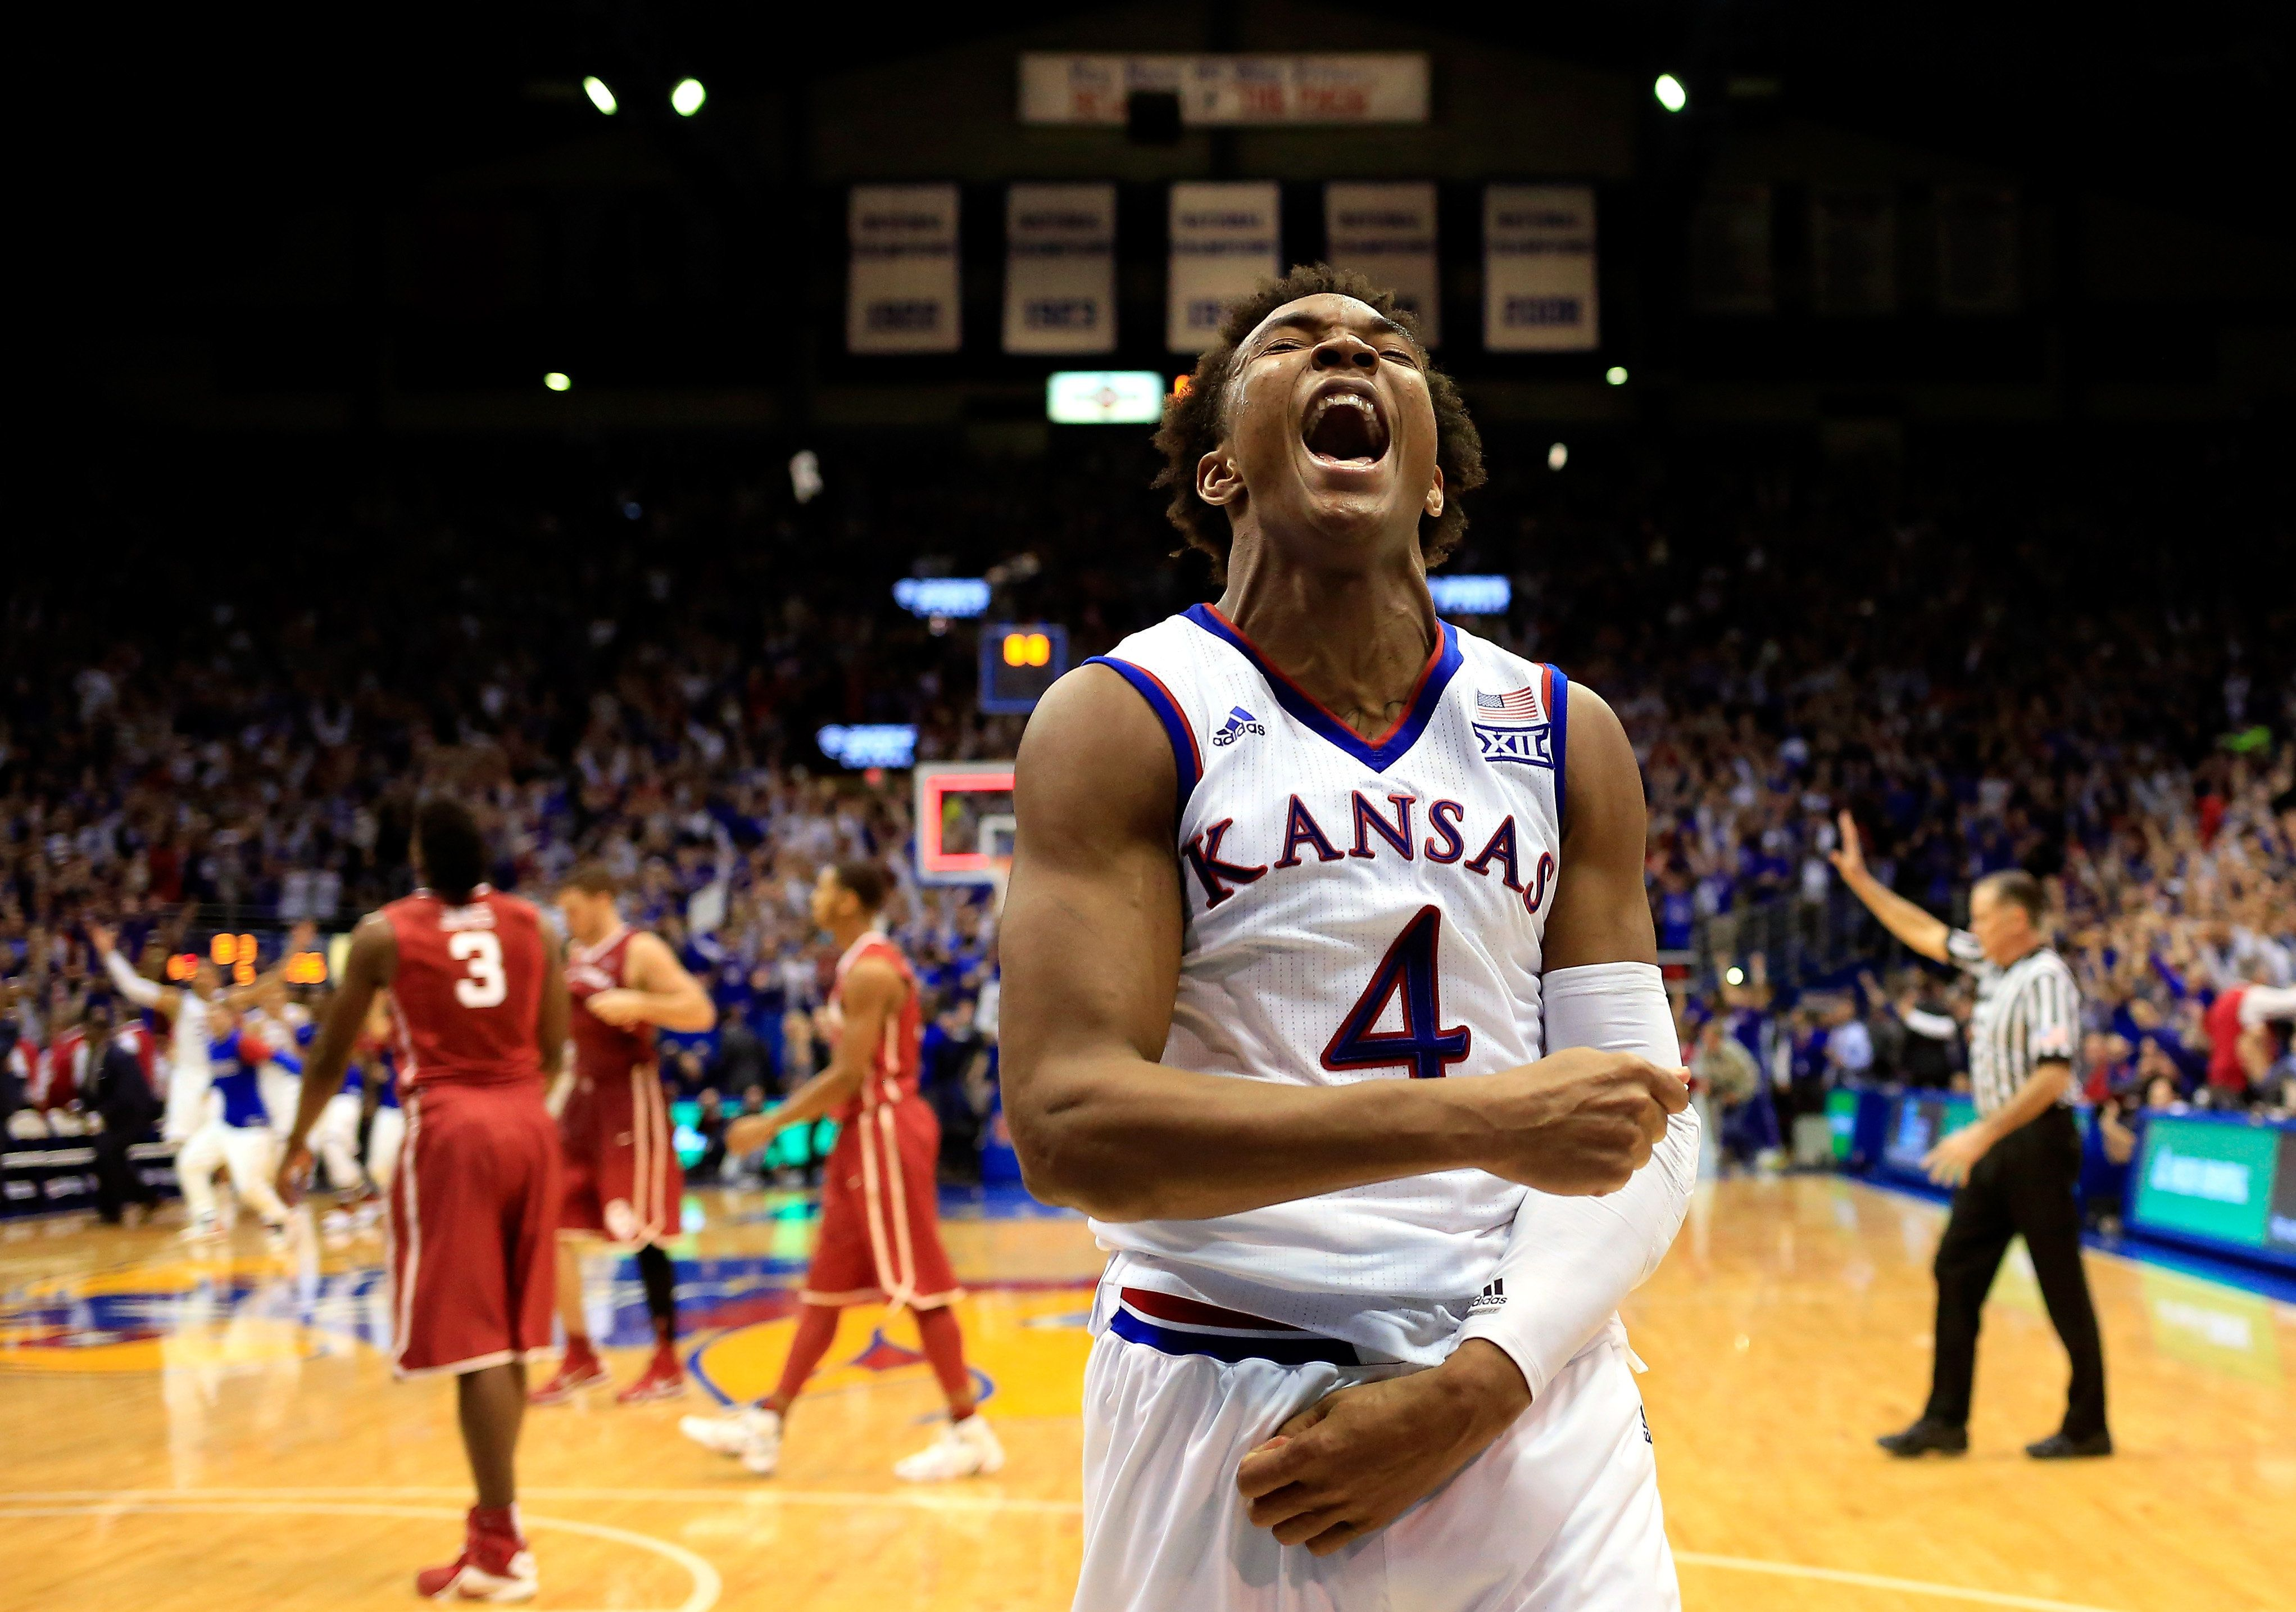 LAWRENCE, KS - JANUARY 04:  Devonte' Graham #4 of the Kansas Jayhawks celebrates as the Jayhawks defeat the Oklahoma Sooners 109-106 in triple overtime to win the game at Allen Fieldhouse on January 4, 2016 in Lawrence, Kansas.  (Photo by Jamie Squire/Getty Images)